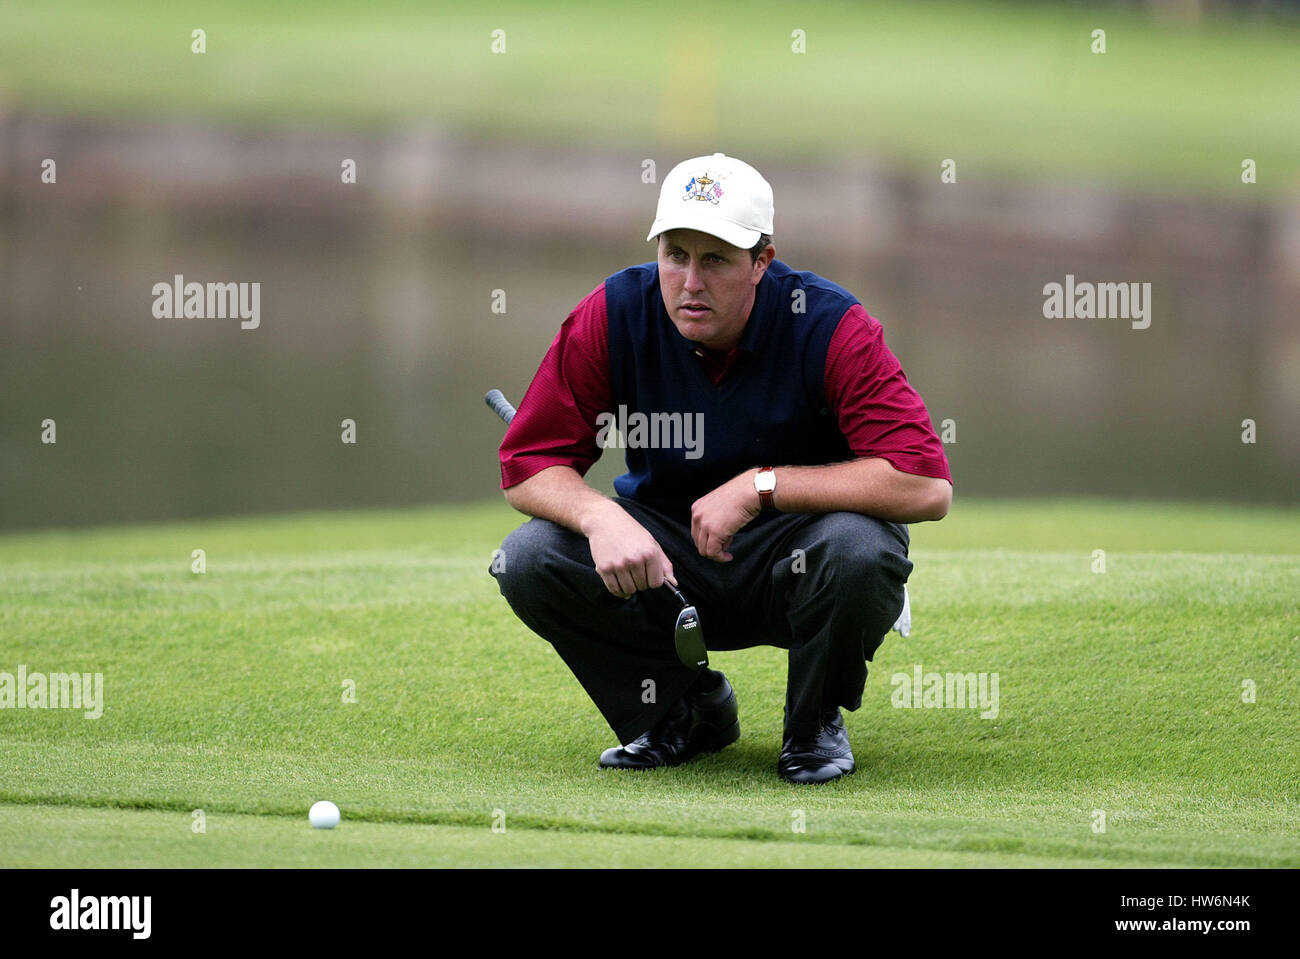 PHIL MICKELSON RYDER CUP 02 9TH GREEN THE BELFRY SUTTON COLDFIELD BIRMINGHAM ENGLAND 27 September 2002 - Stock Image